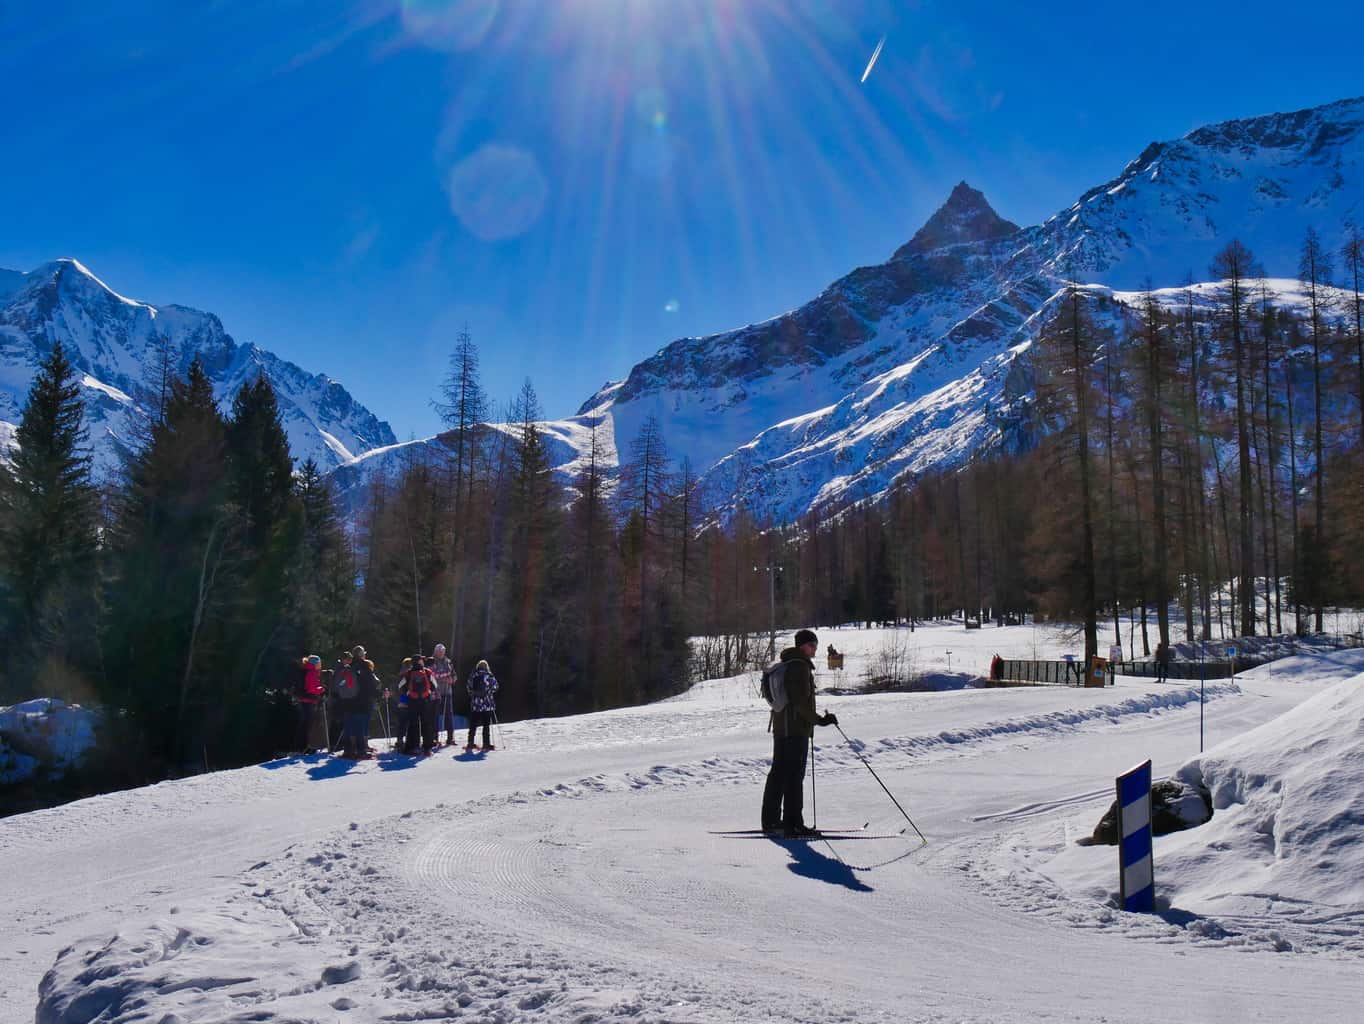 Nordic Ski area in Paradiski with a cross-country skier and walkers surrounded by snowy mountains